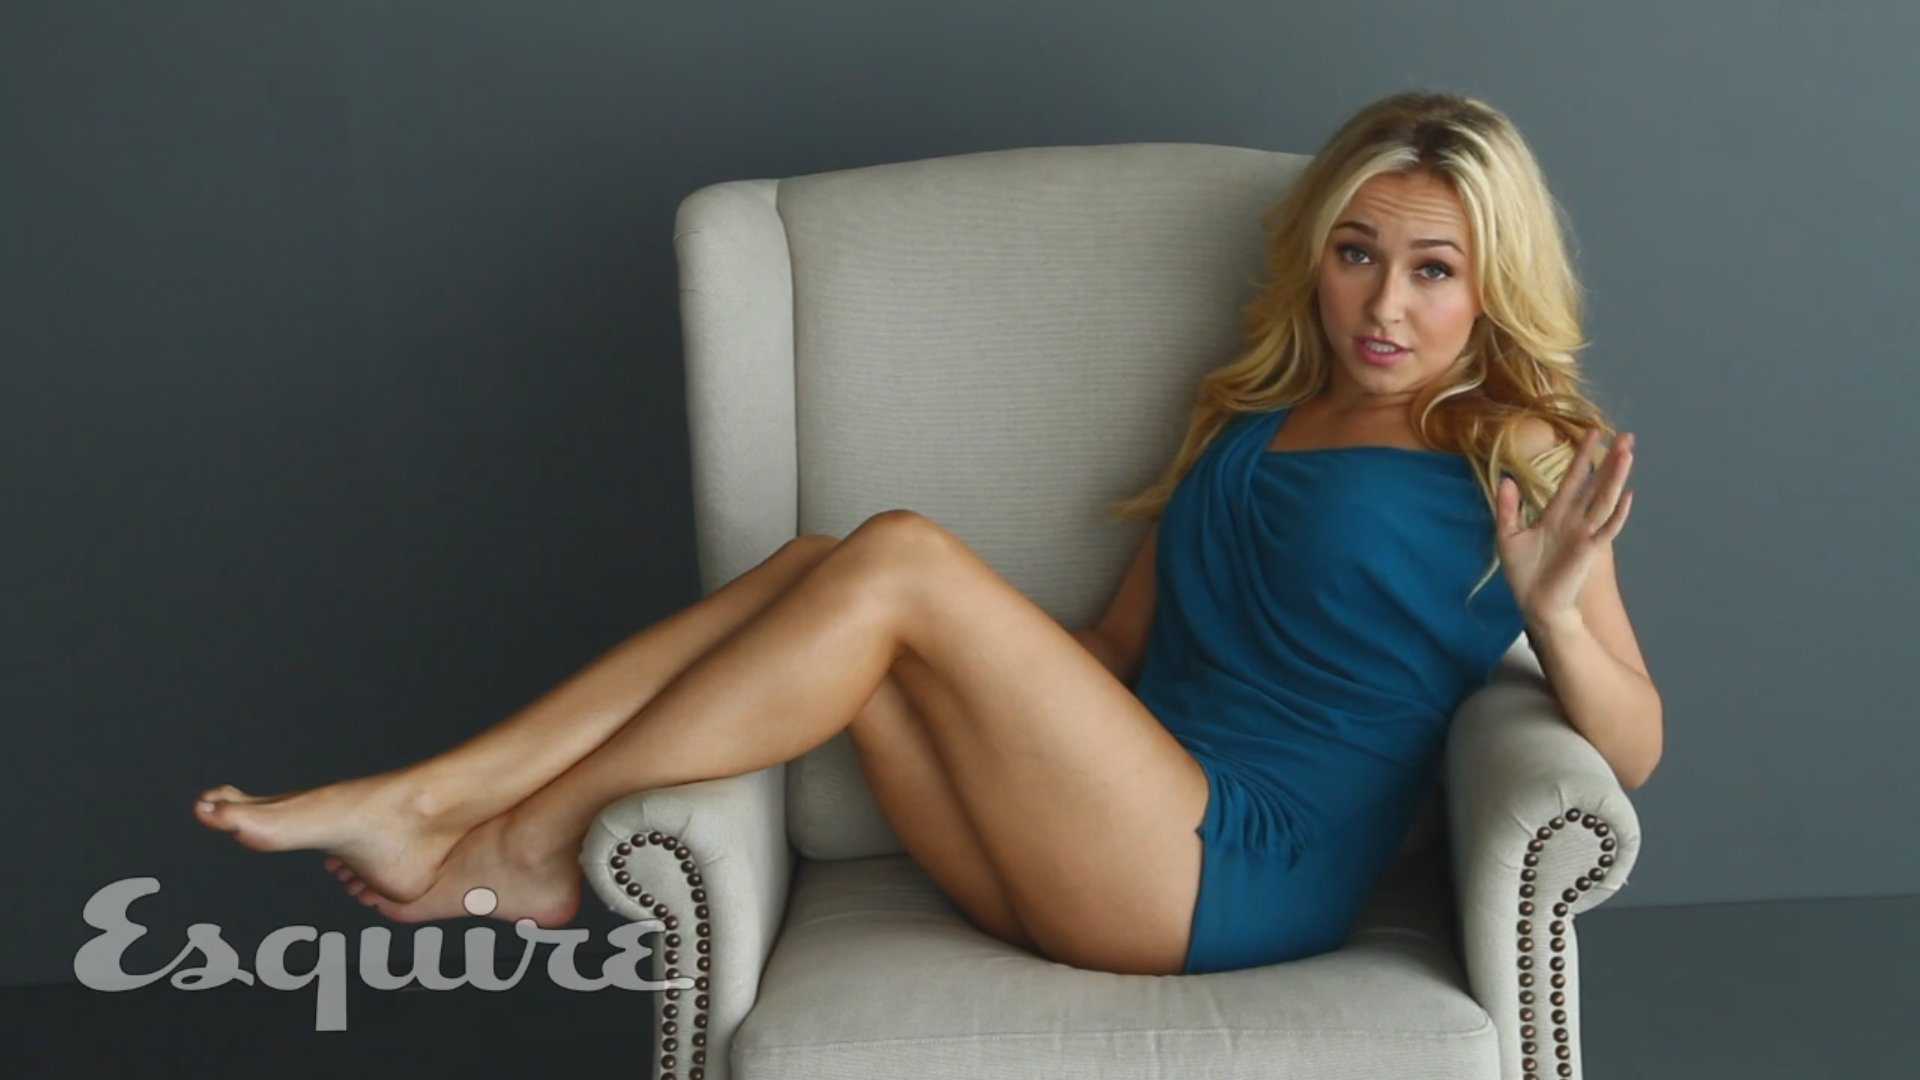 Hayden Panettiere Tattoo On Foot HD Wallpaper Background Images 1920x1080